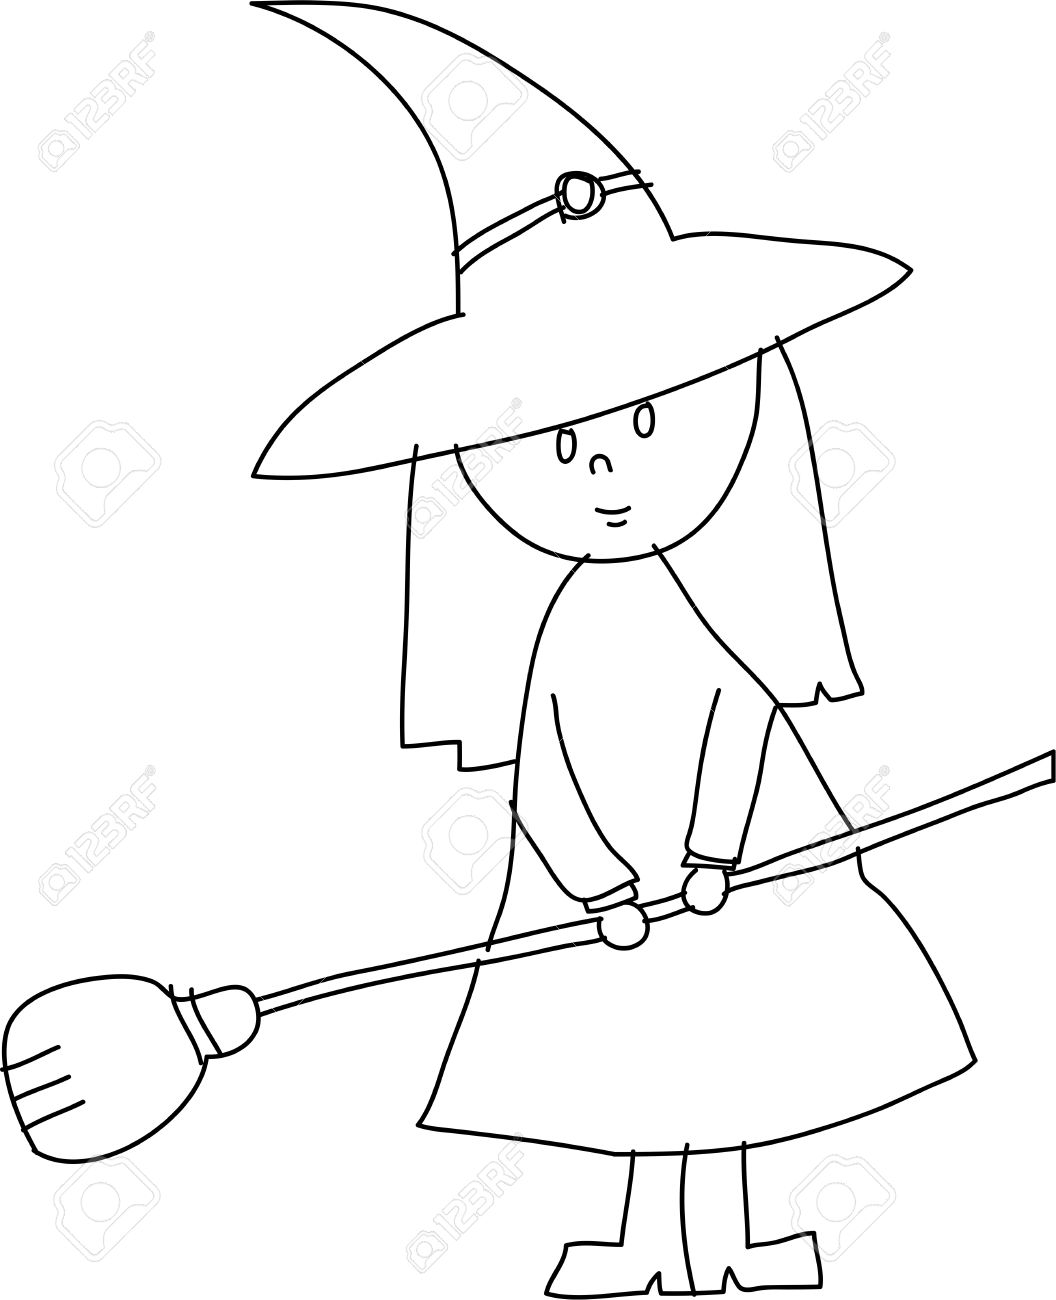 Easy Halloween Witch Drawings Hand Draw Halloween Witch